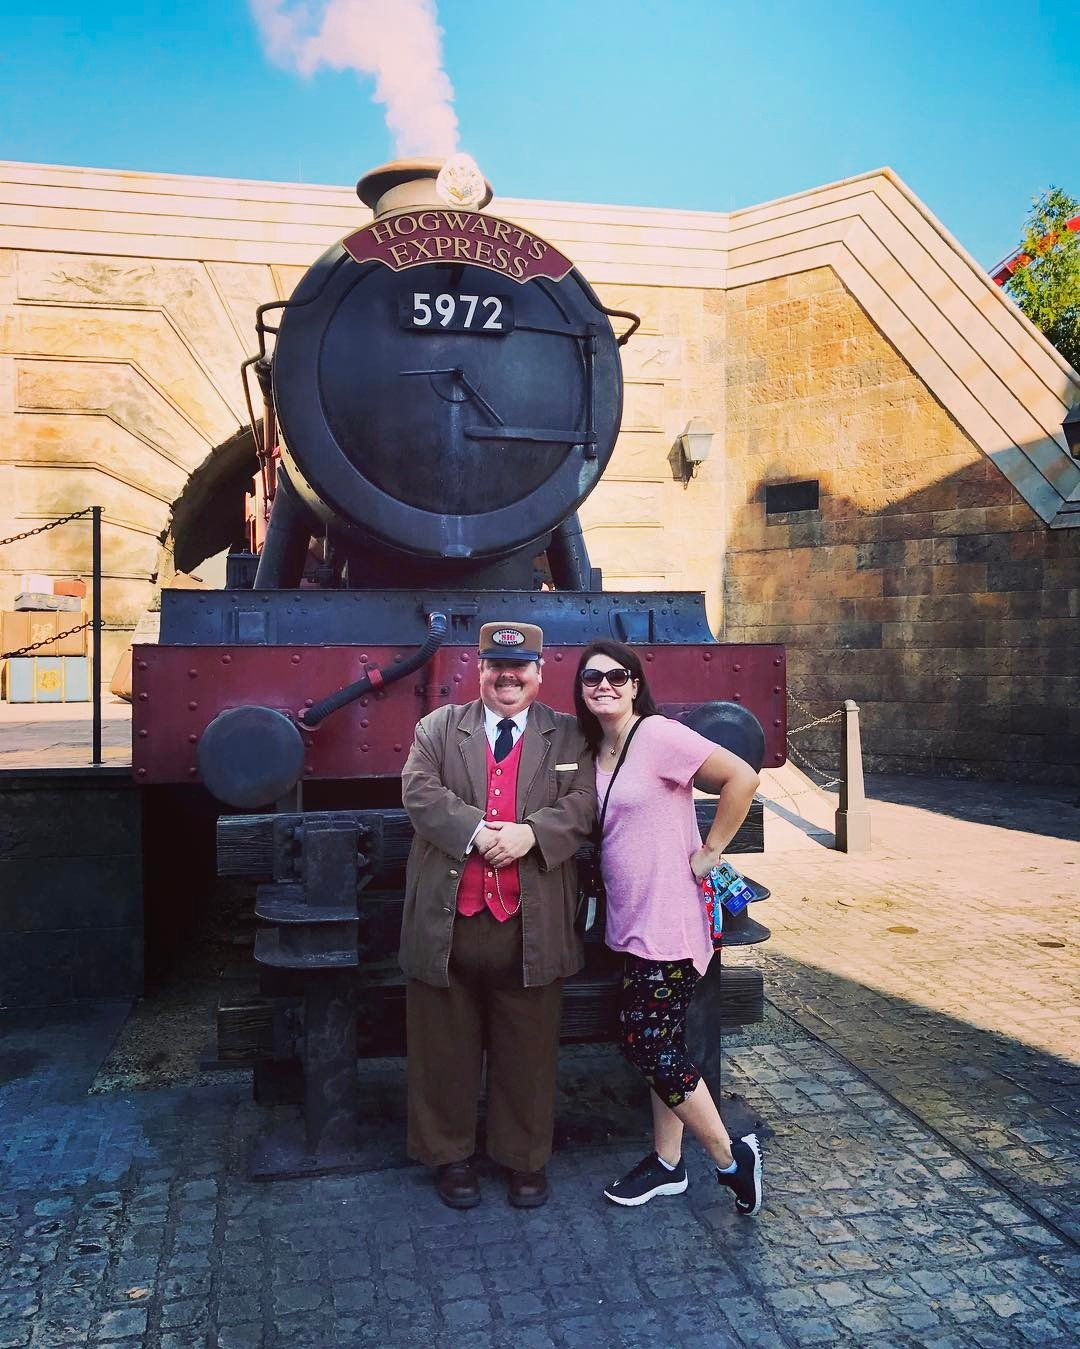 A woman poses in front of the Hogwarts Express